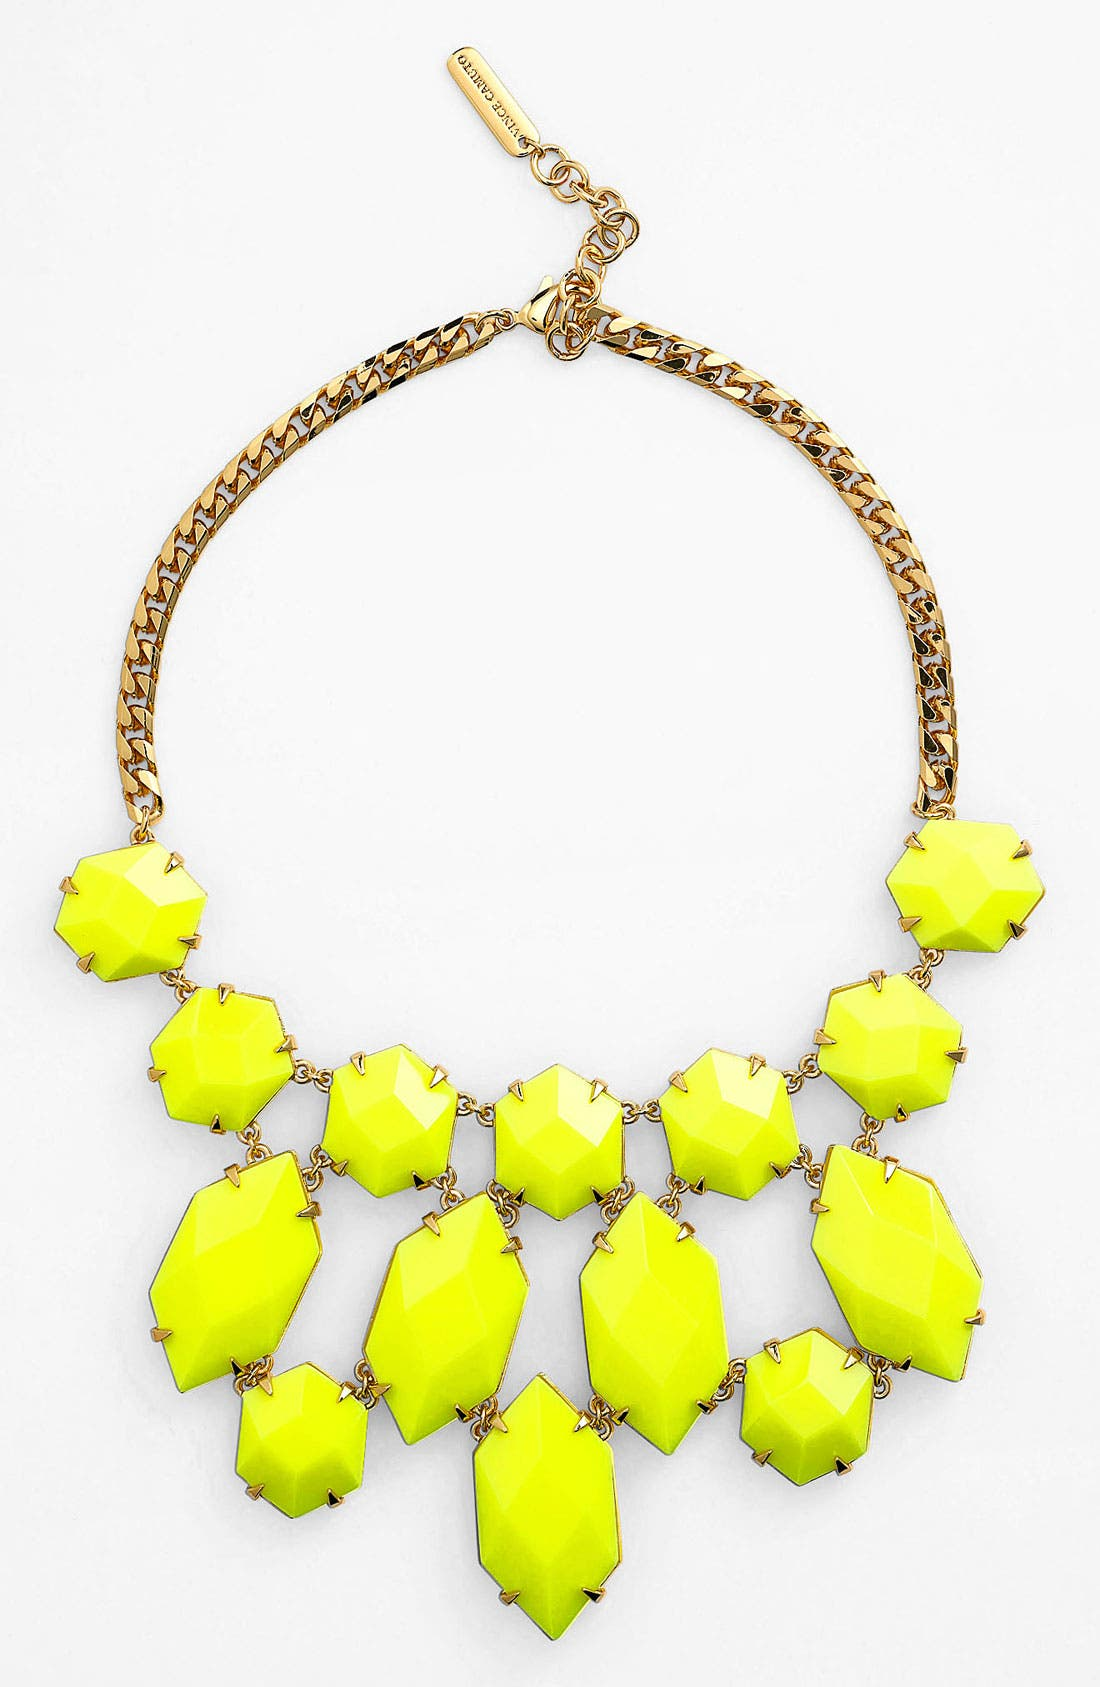 Alternate Image 1 Selected - Vince Camuto 'Bright Gems' Faceted Resin Bib Necklace